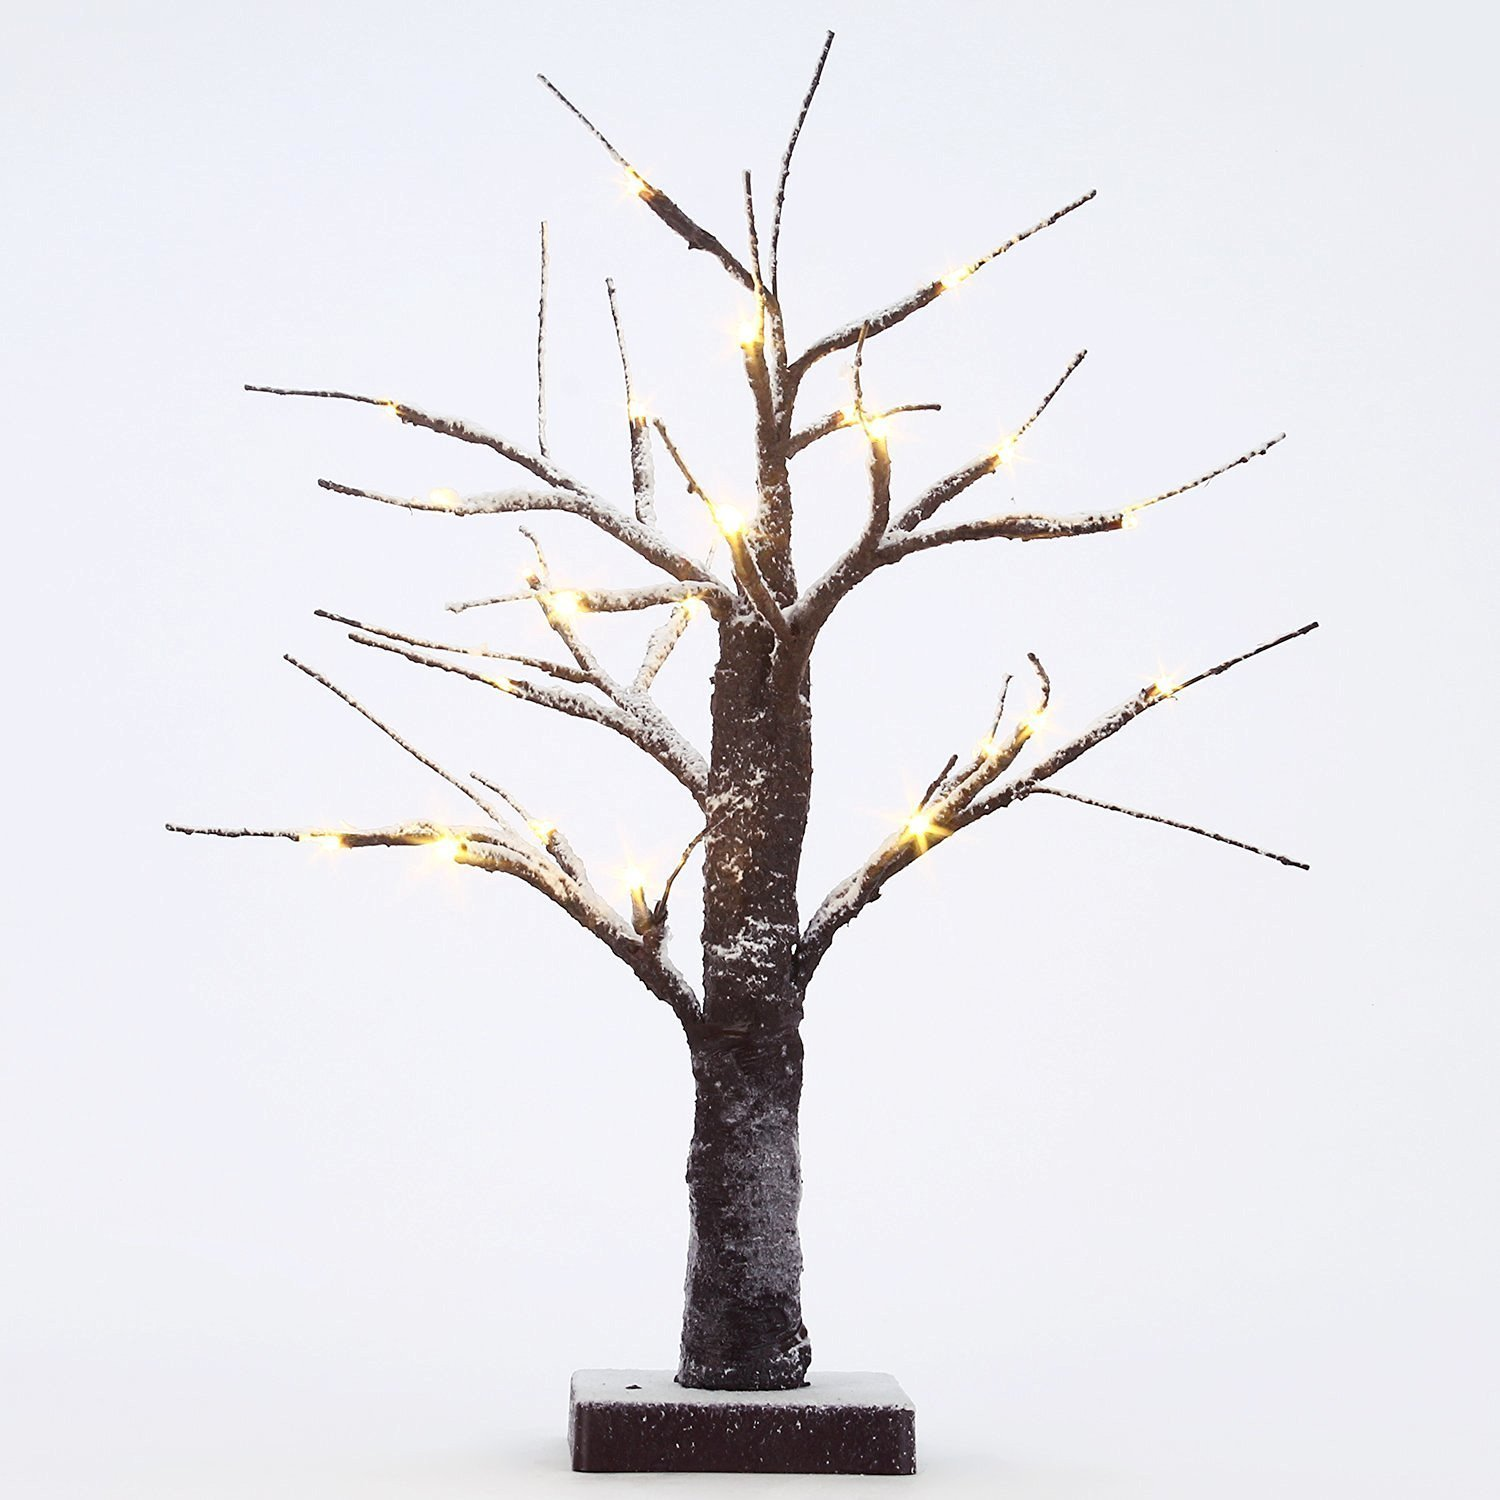 Fashionlite Bonsai LED Light Decorative Xmas Snow Tree,Home/Party/Festival/Christmas/Indoor and Outdoor Use SNWL001